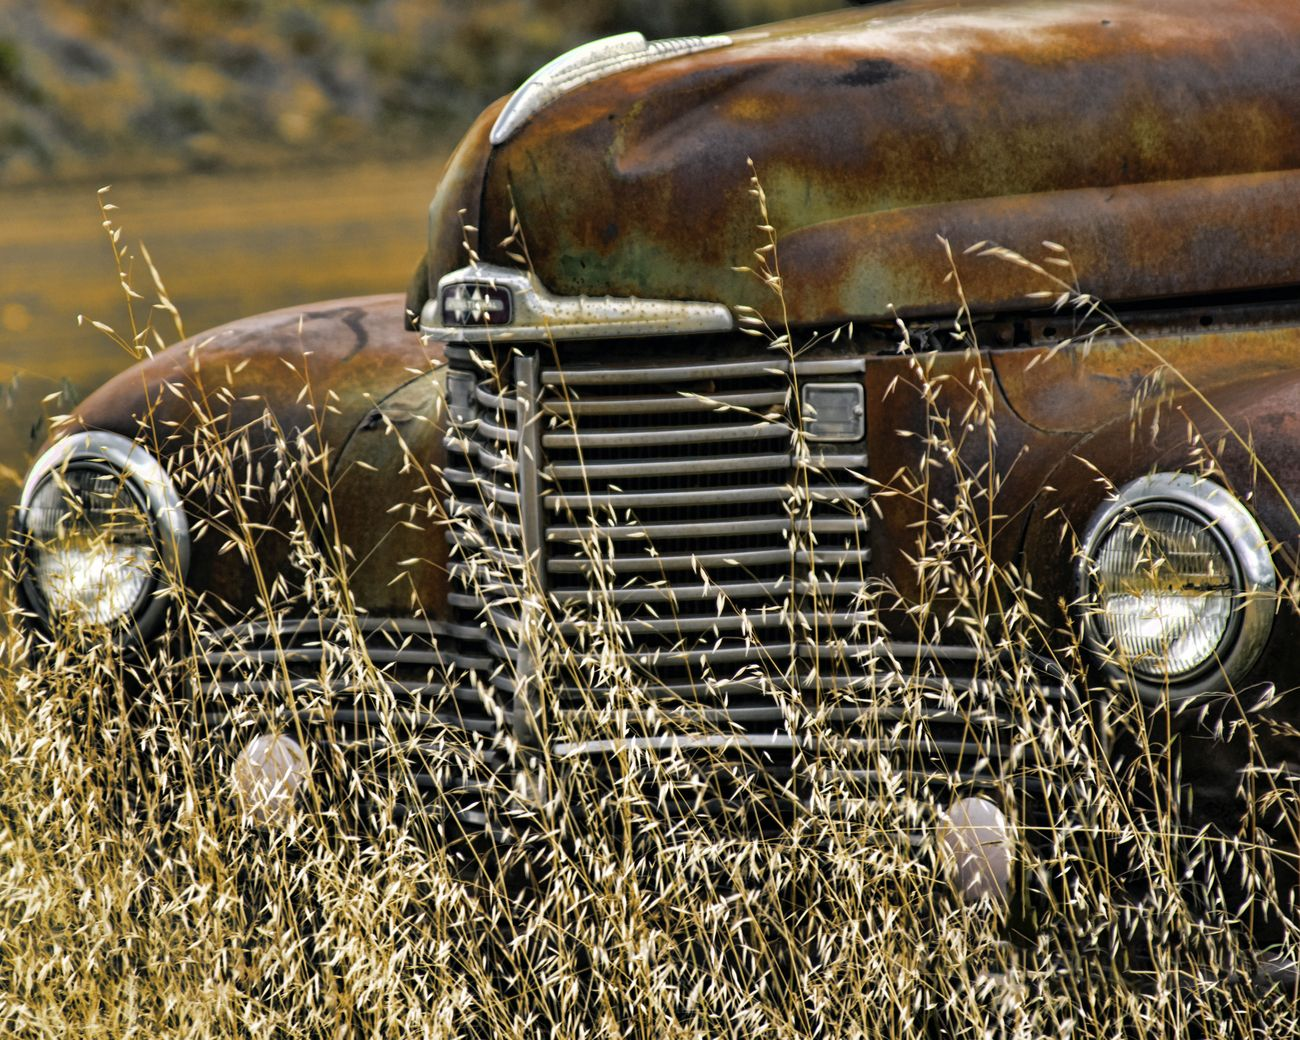 Old International Truck sitting in the weeds